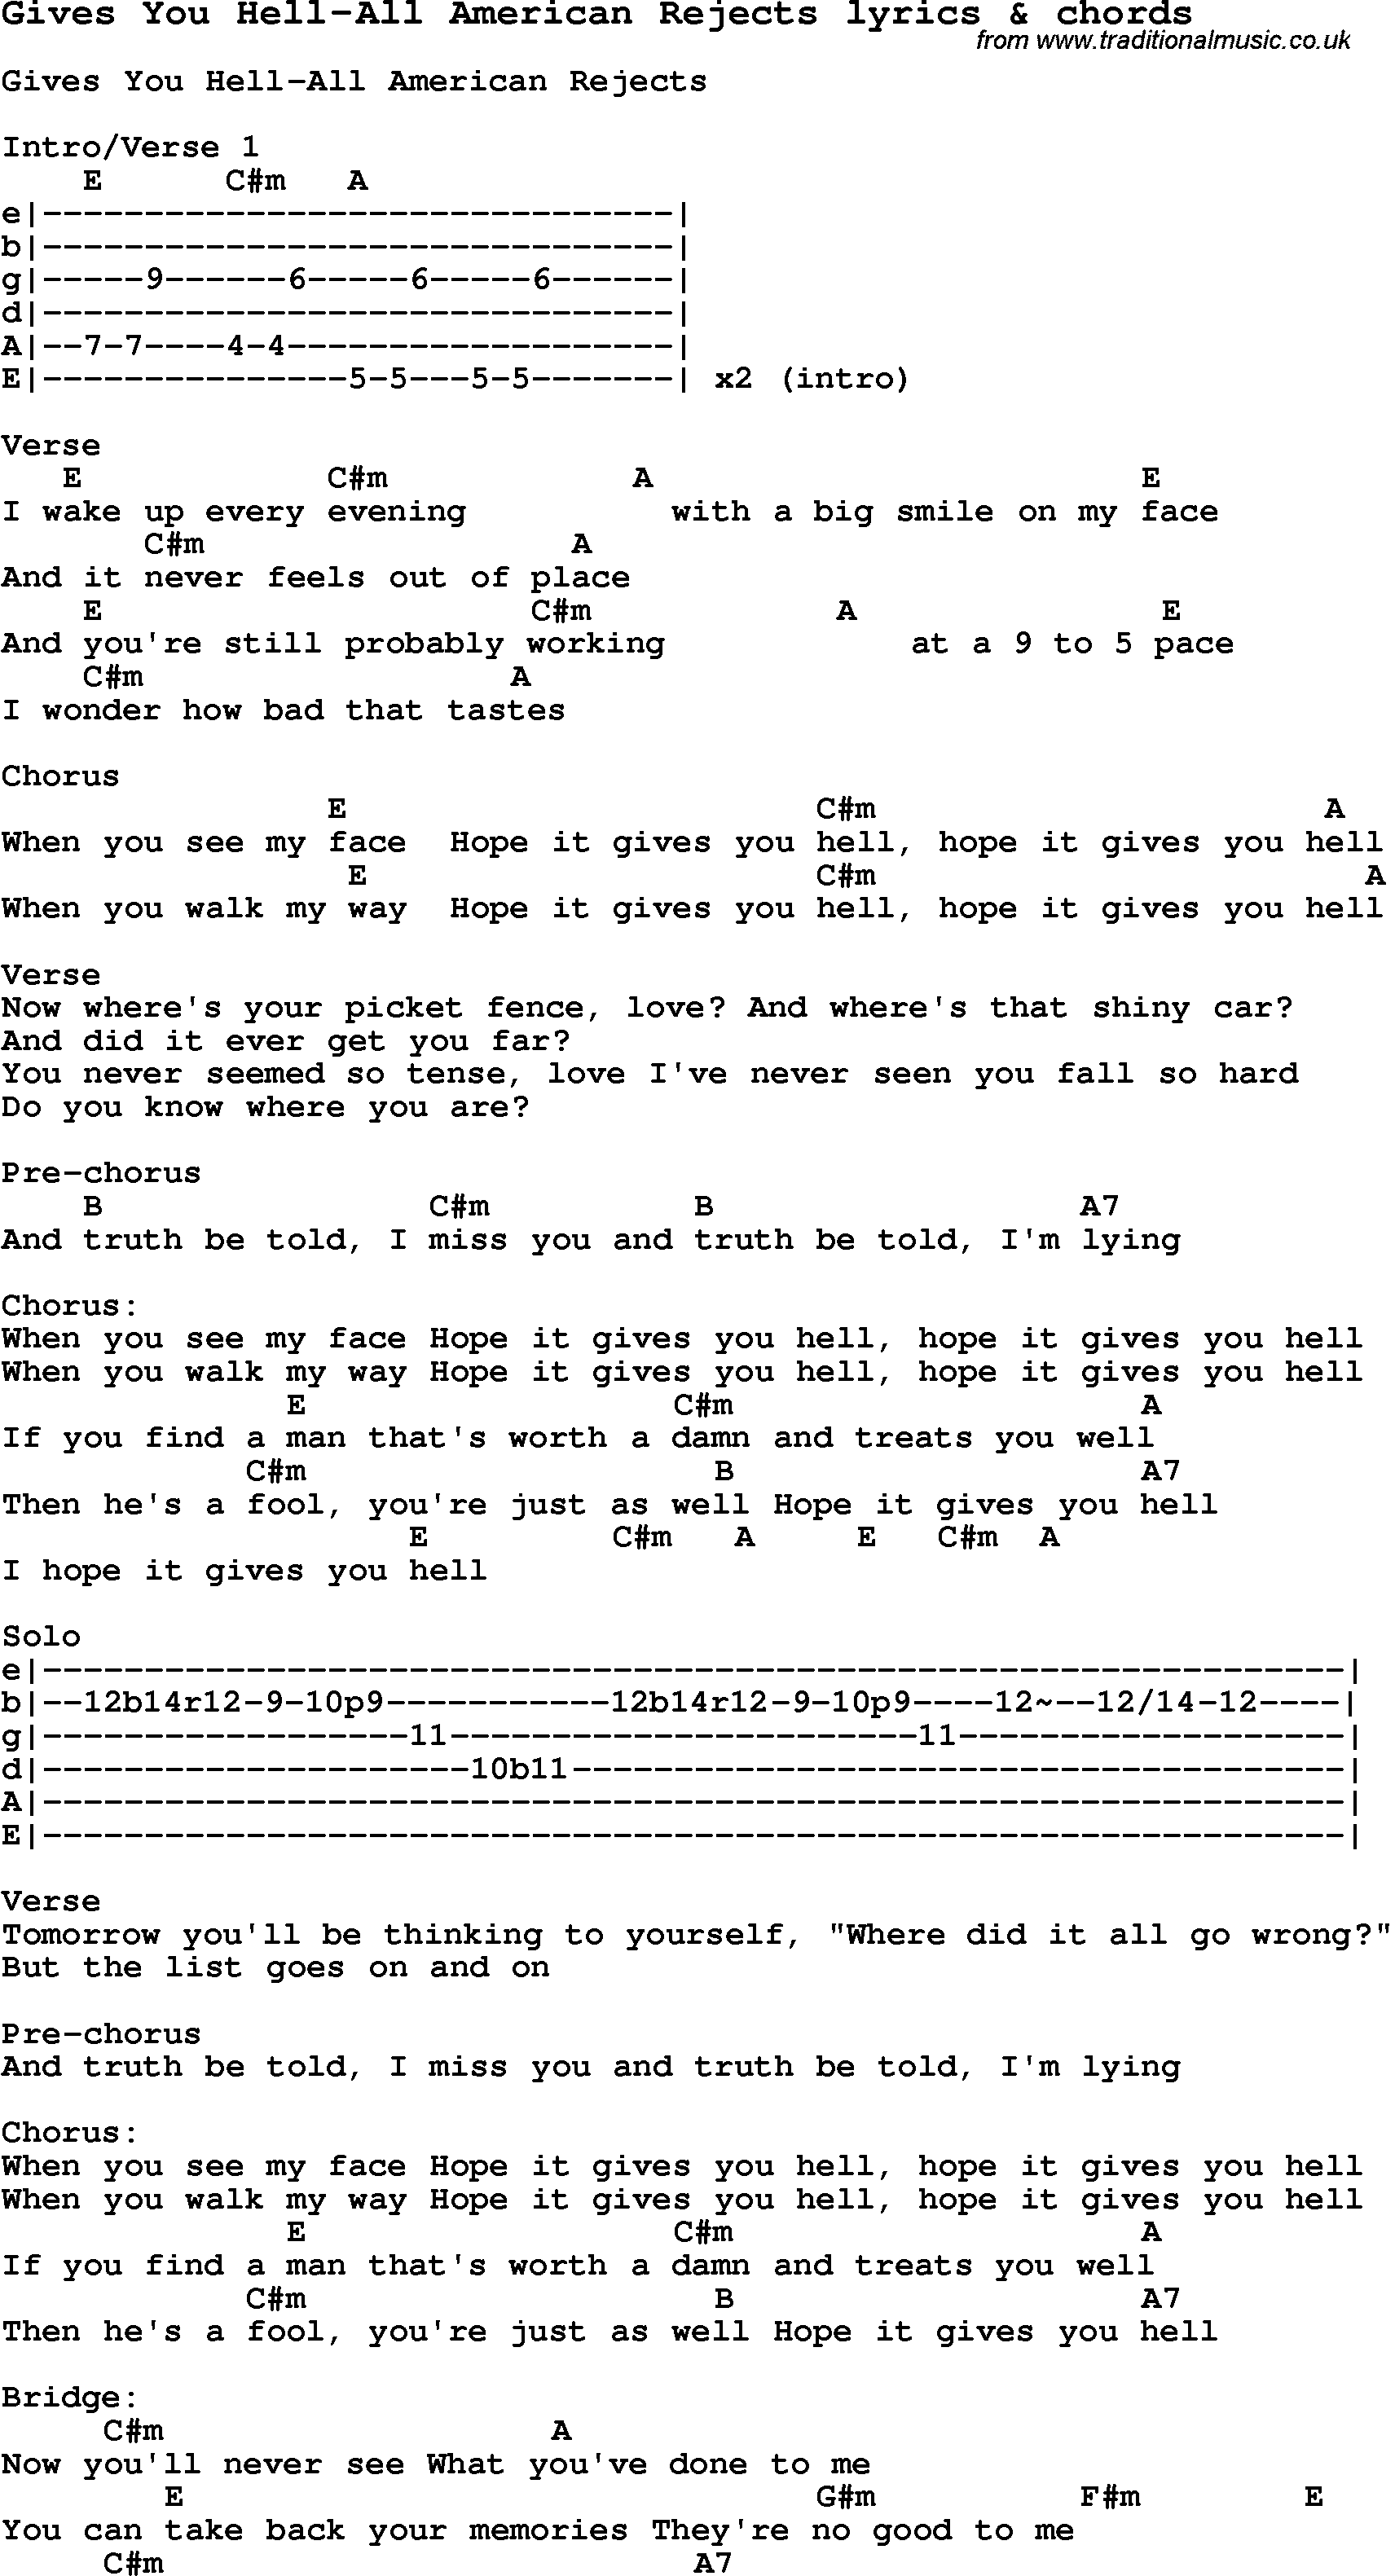 Gives You Hell Lyrics - All American Rejects - YouTube